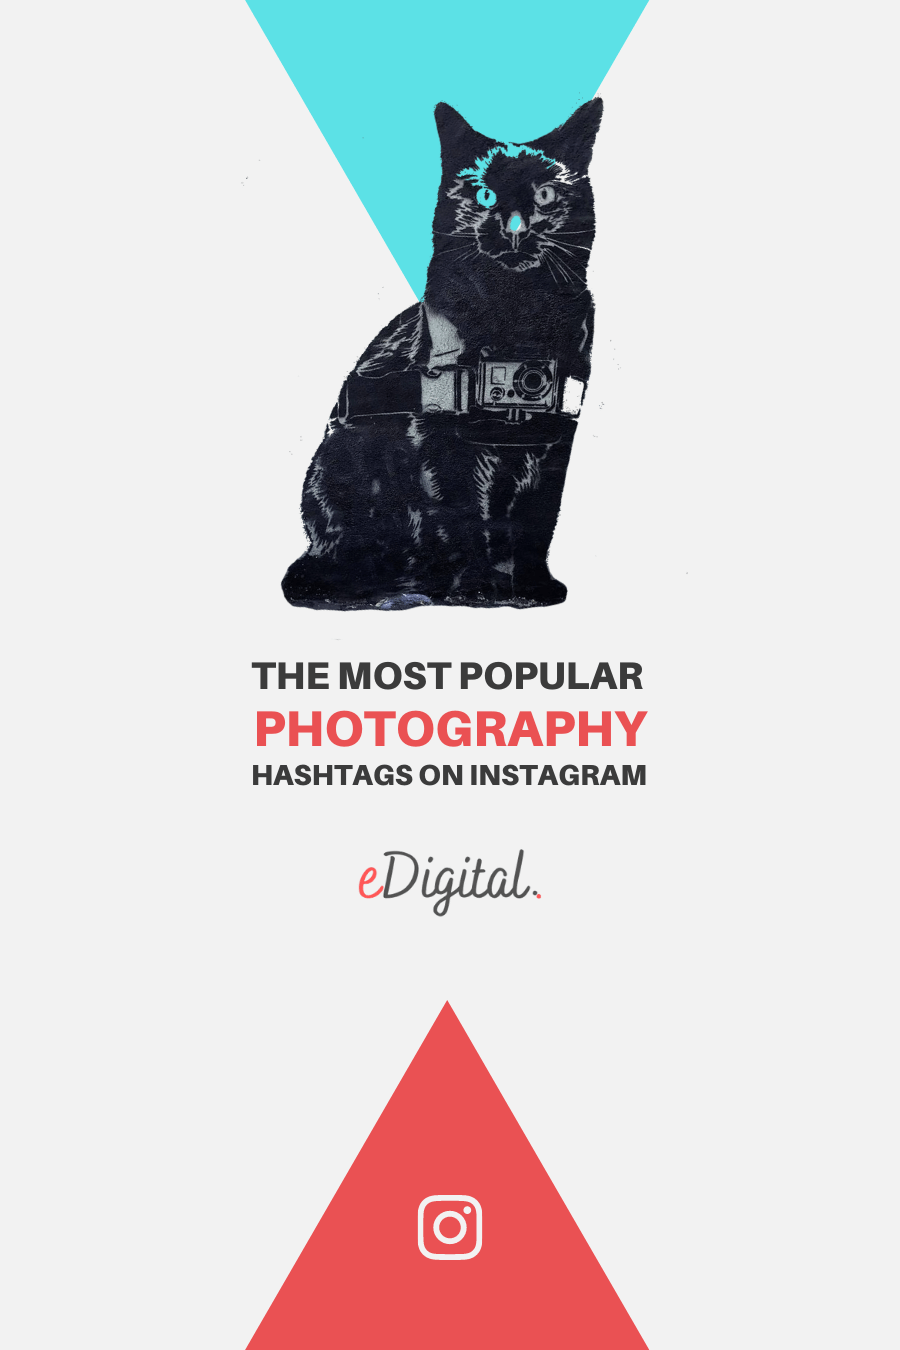 Top most popular photography hashtags Instagram